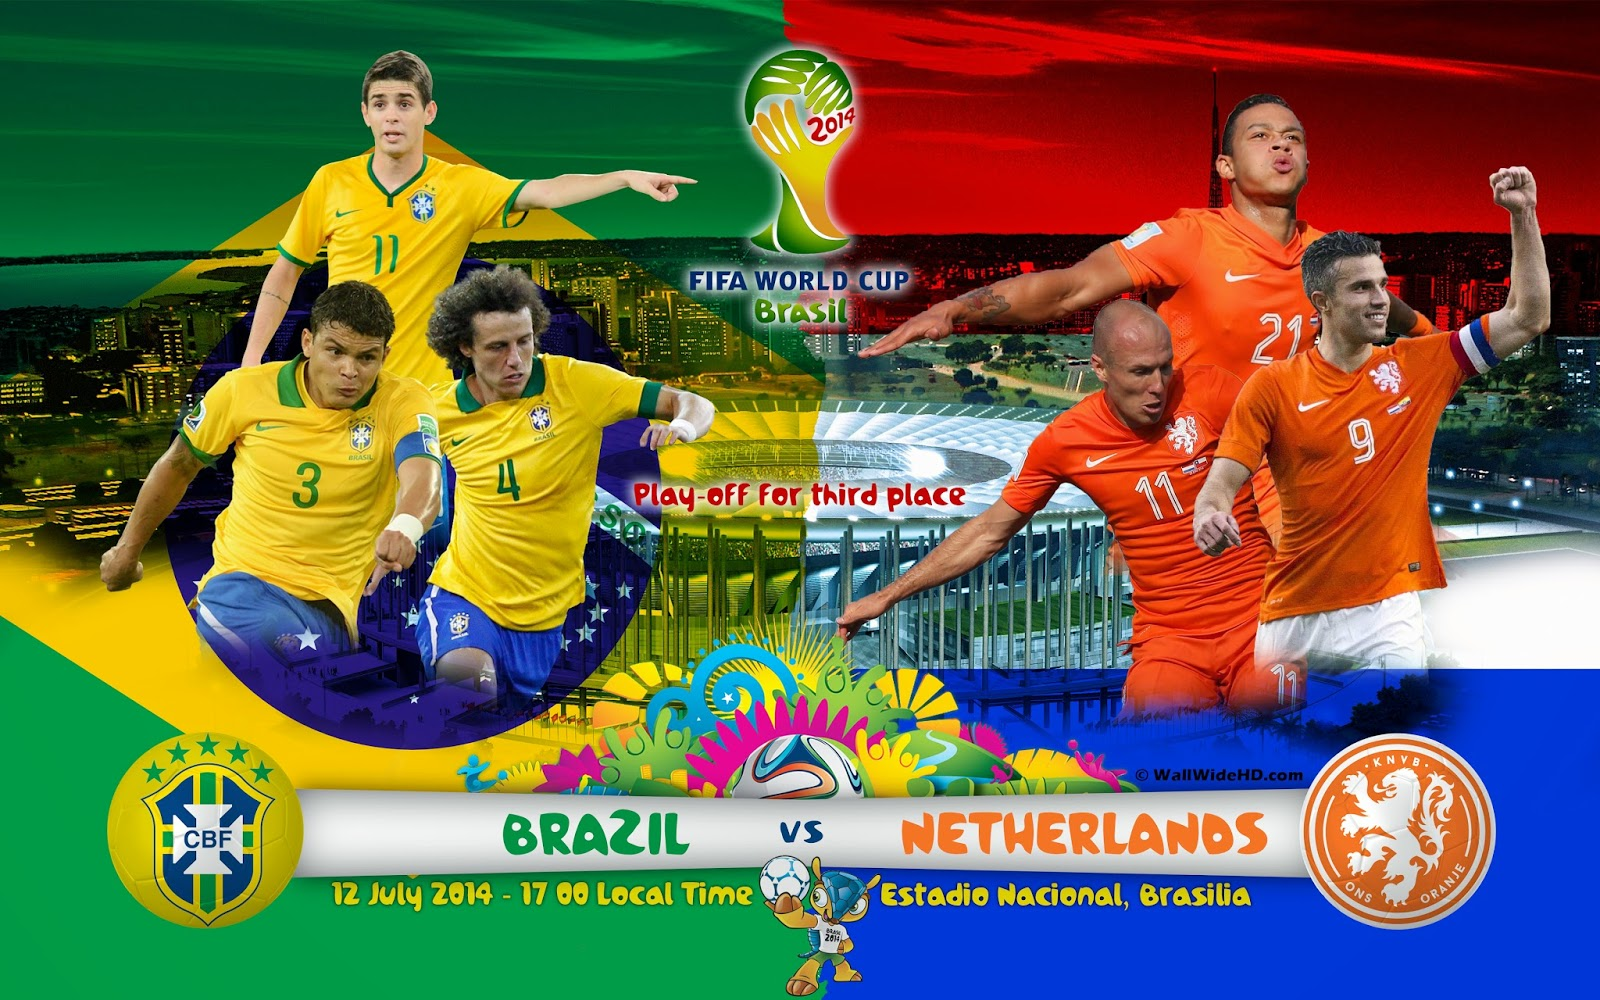 Brazil-vs-Netherlands-2014-World-Cup for Third place